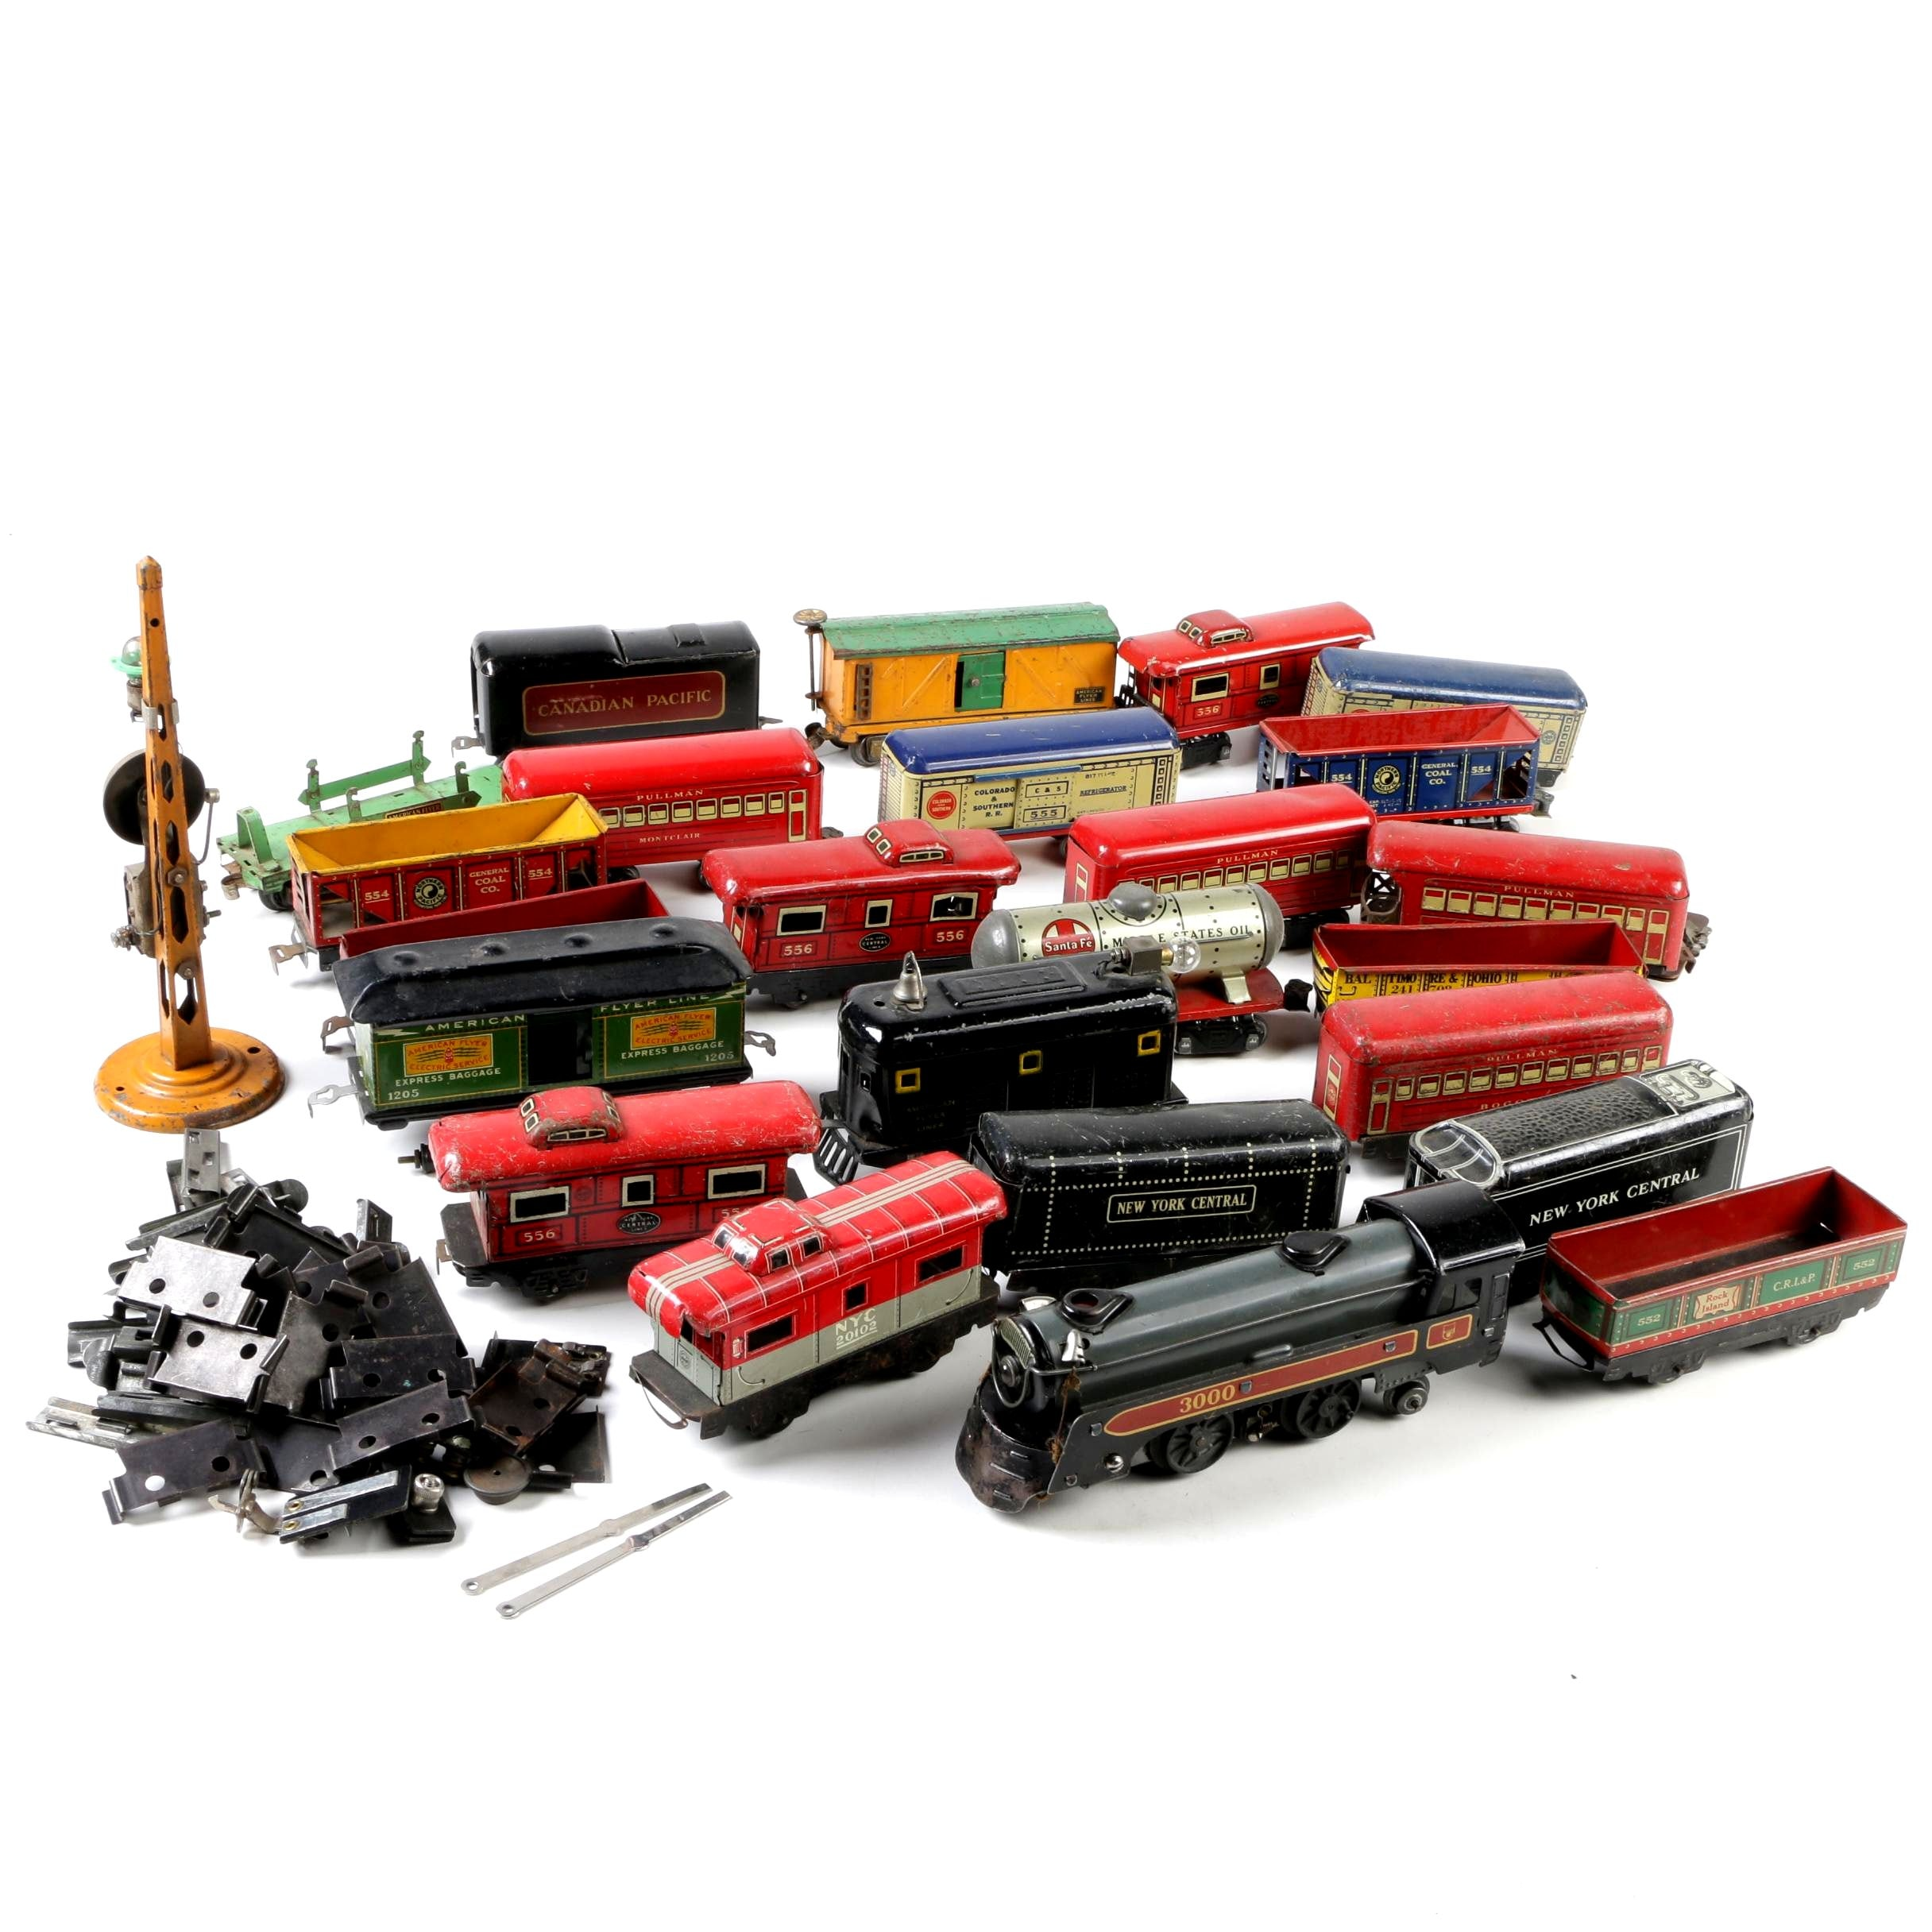 American Flyer Express Baggage and Assorted Train Collection